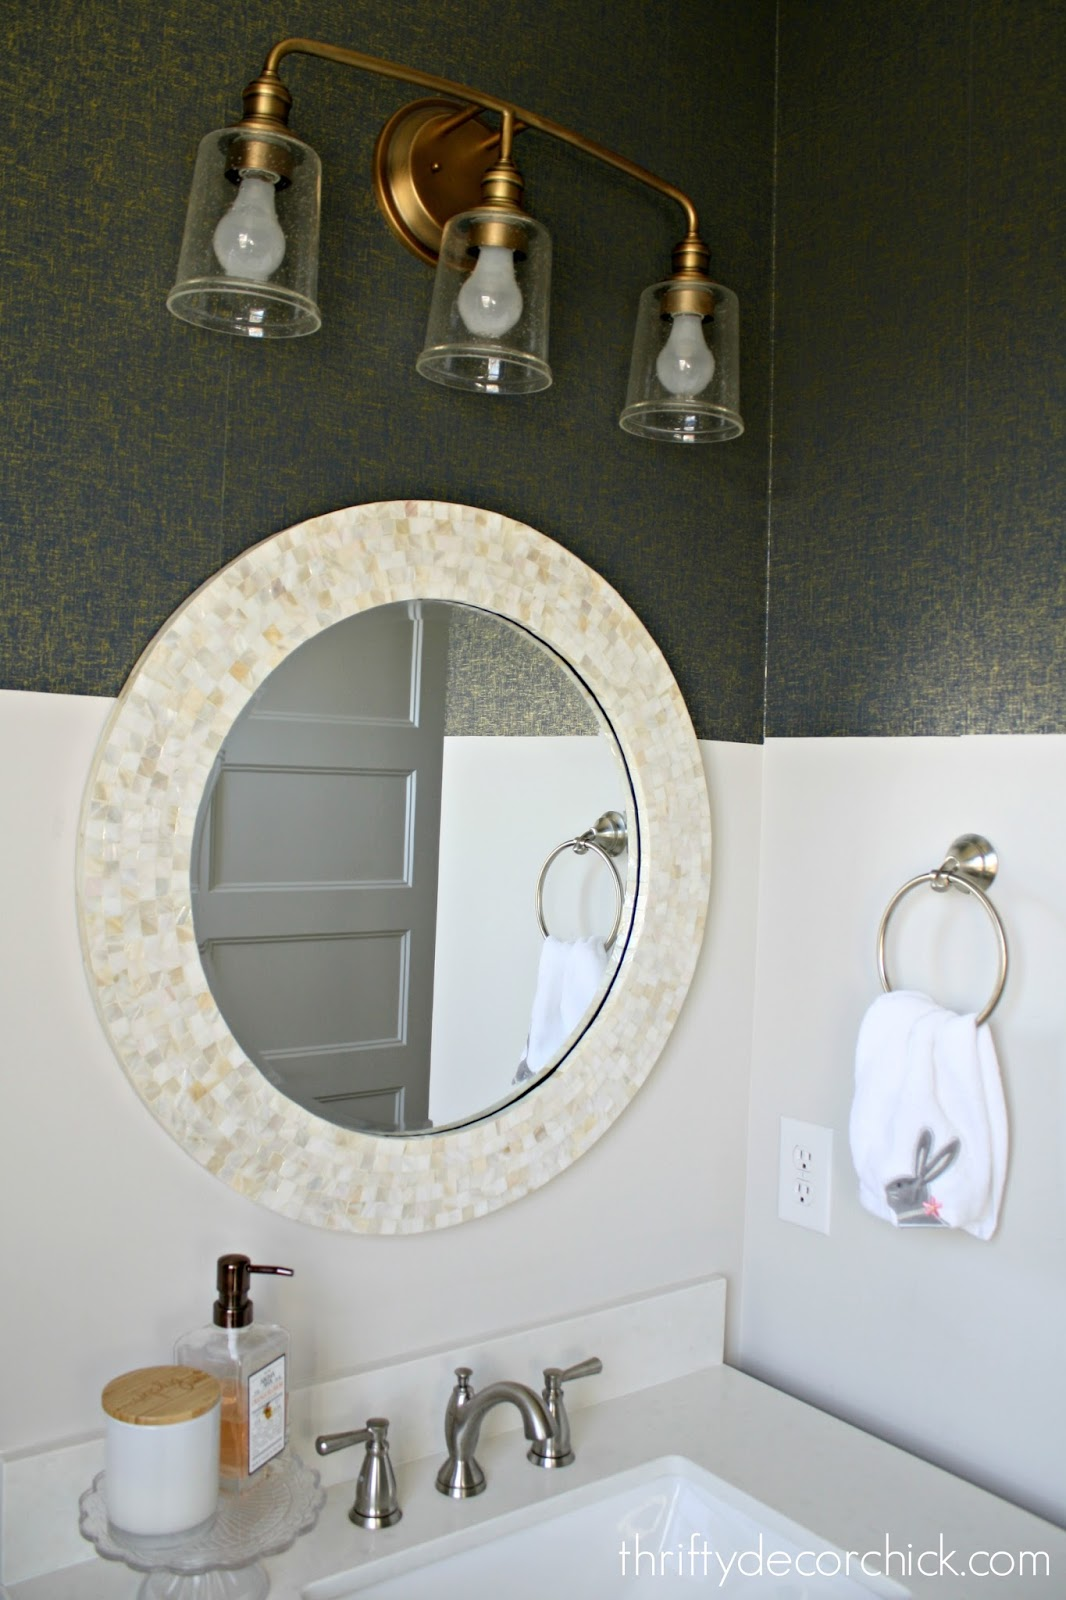 How To Install Peel And Stick Wallpaper From Thrifty Decor Chick